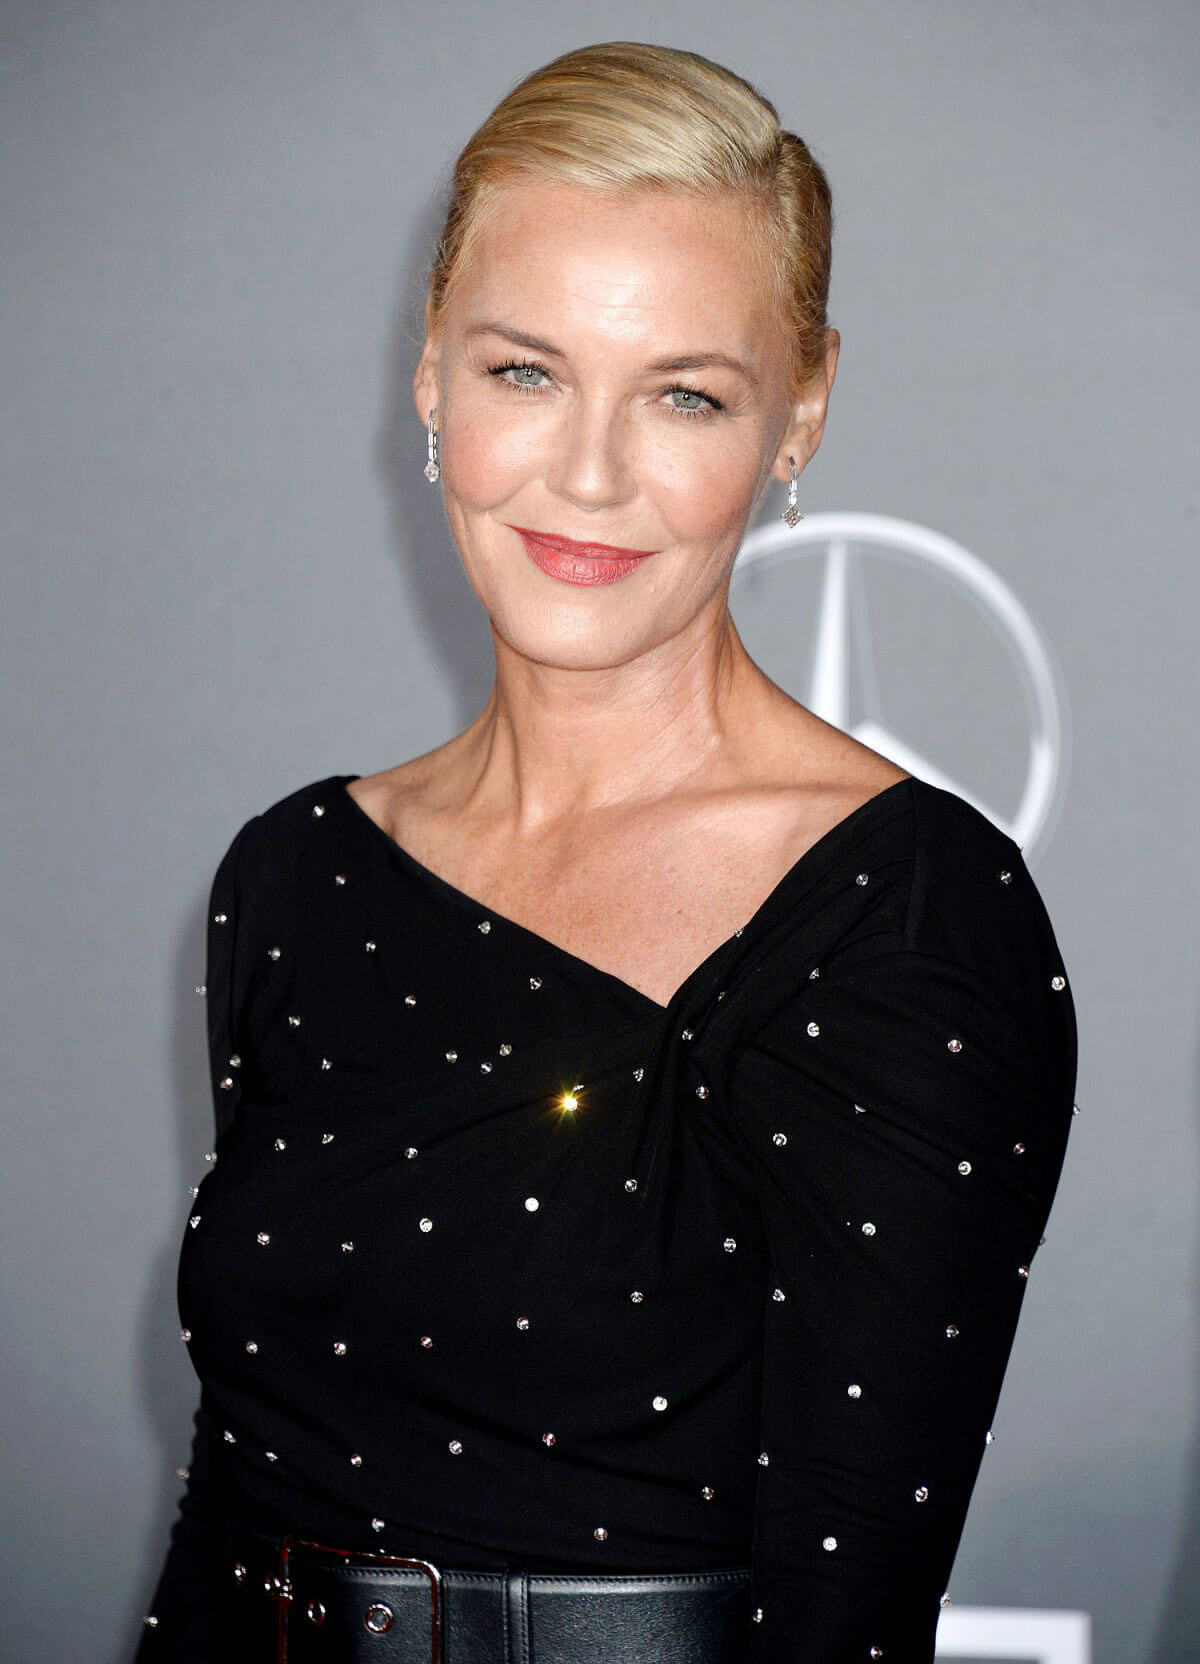 Cleavage Connie Nielsen nude (44 photo), Sexy, Paparazzi, Twitter, swimsuit 2017